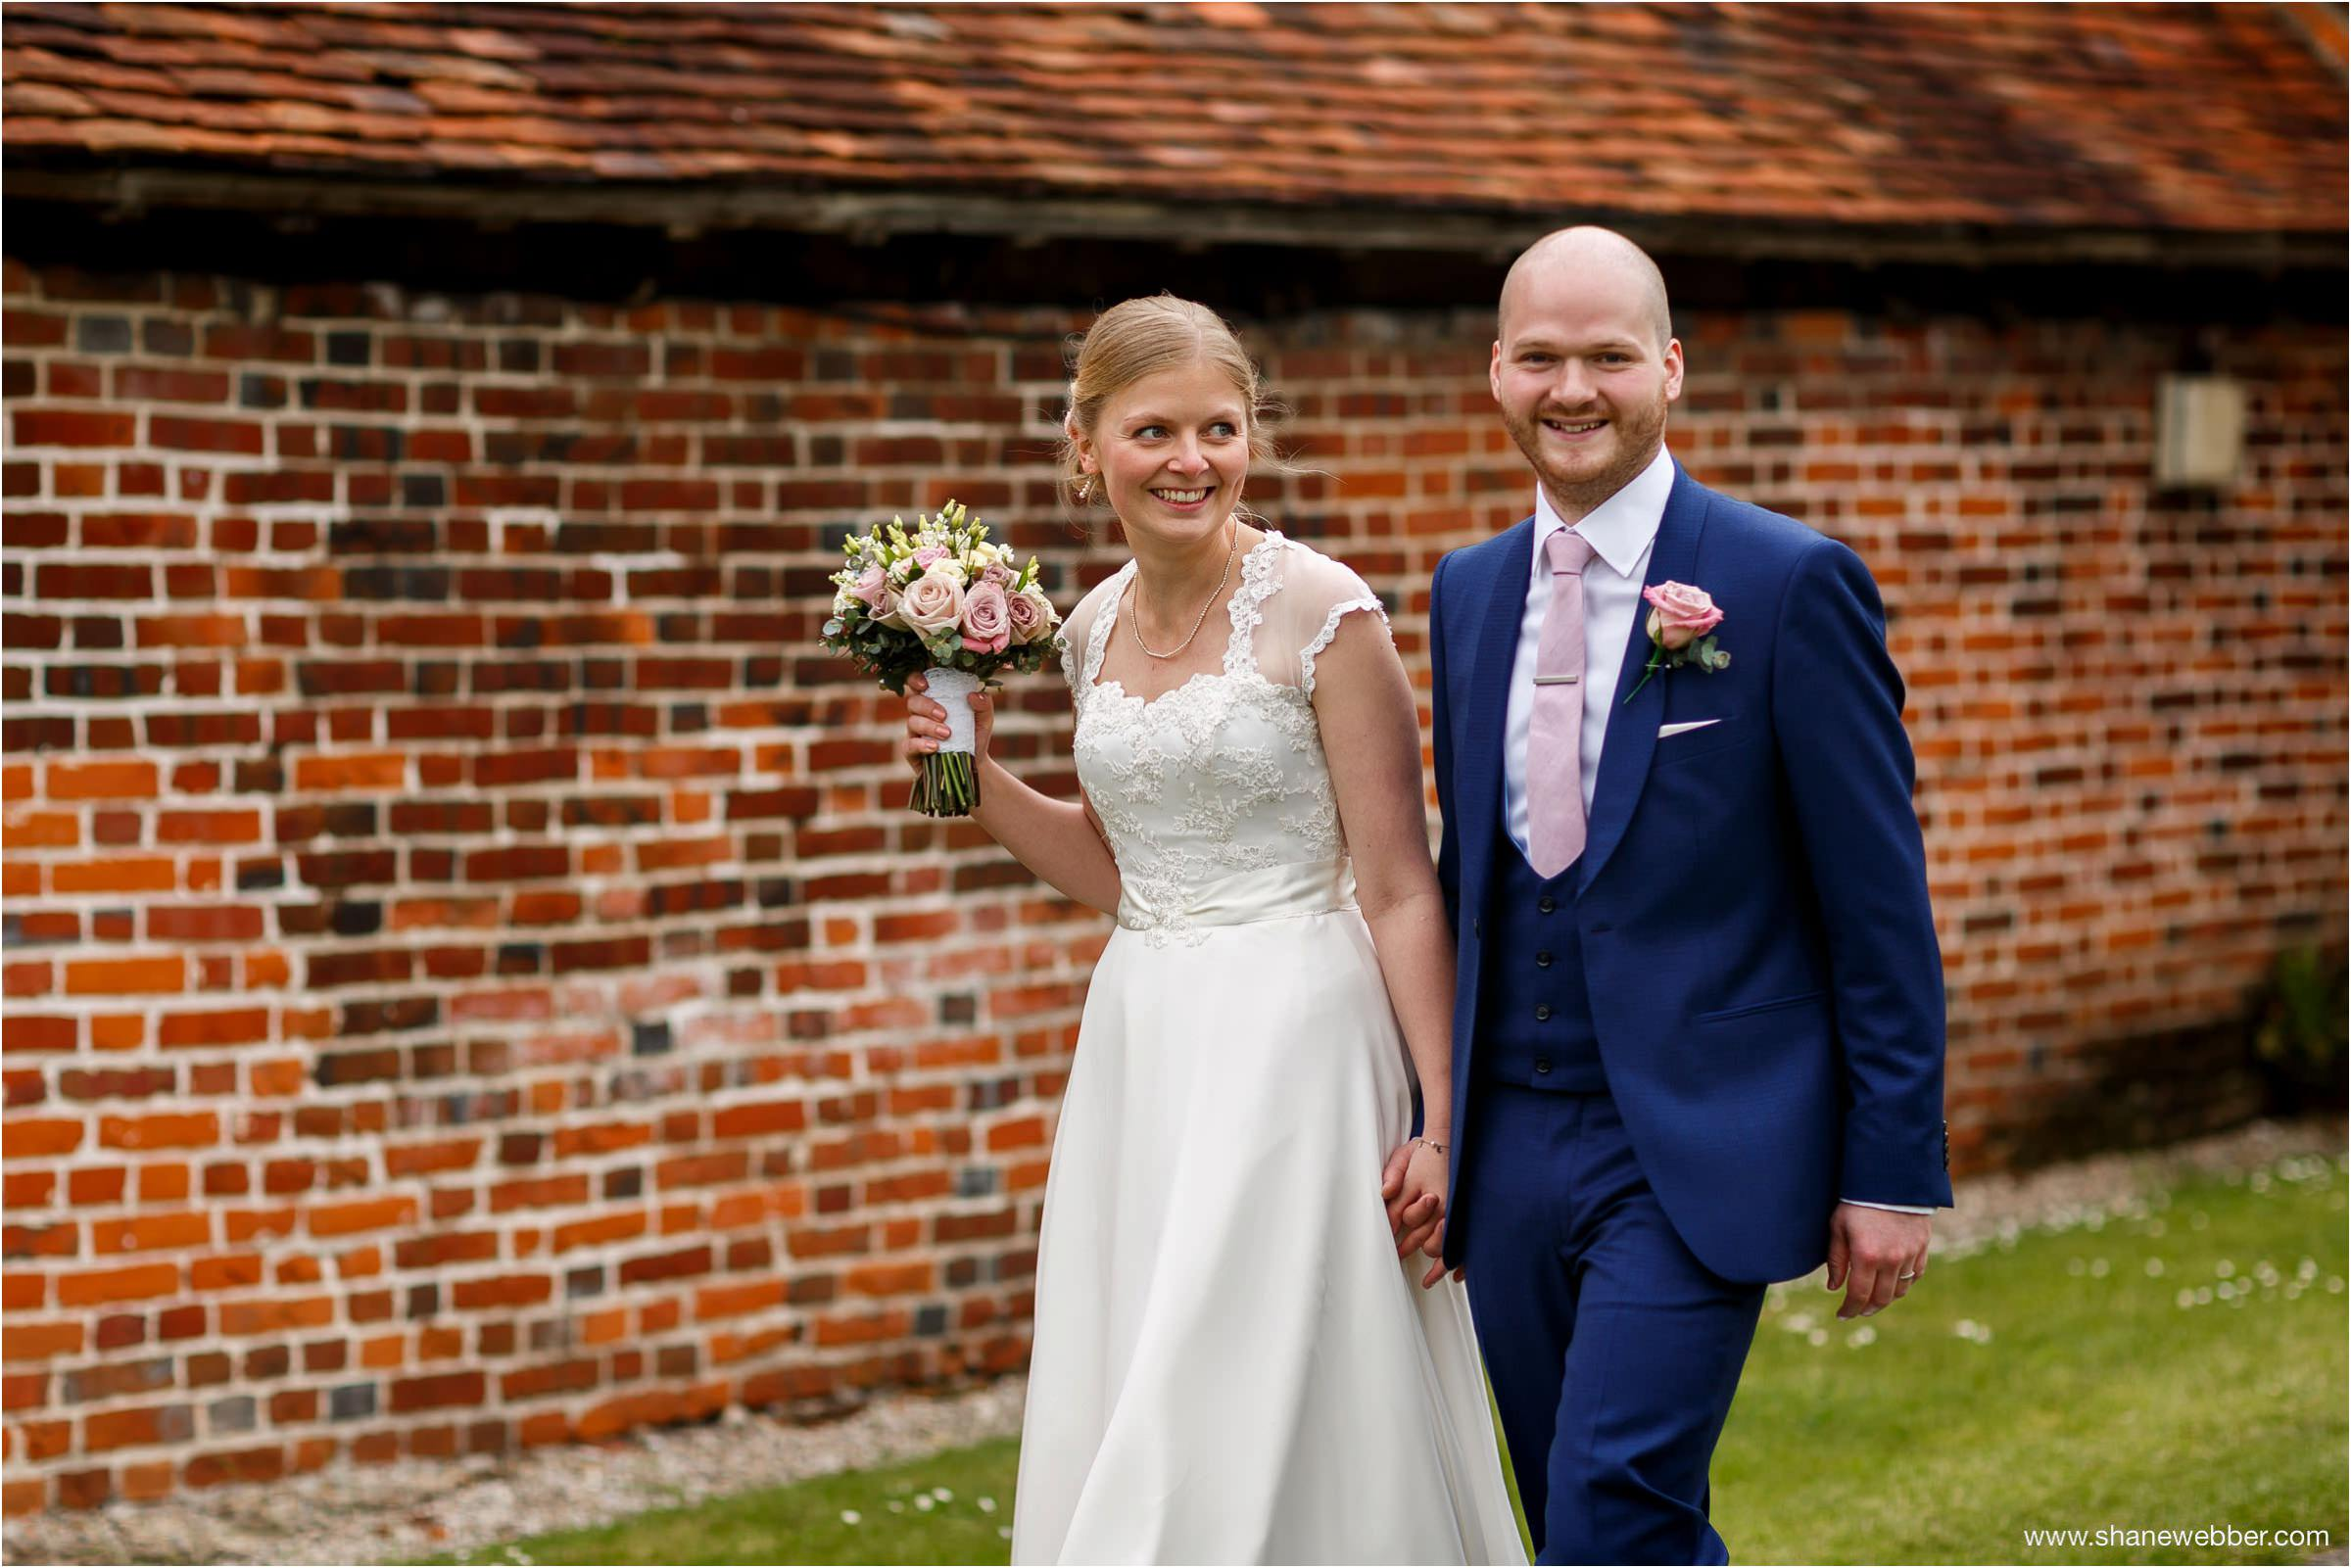 Bride and groom photos at Ufton Court